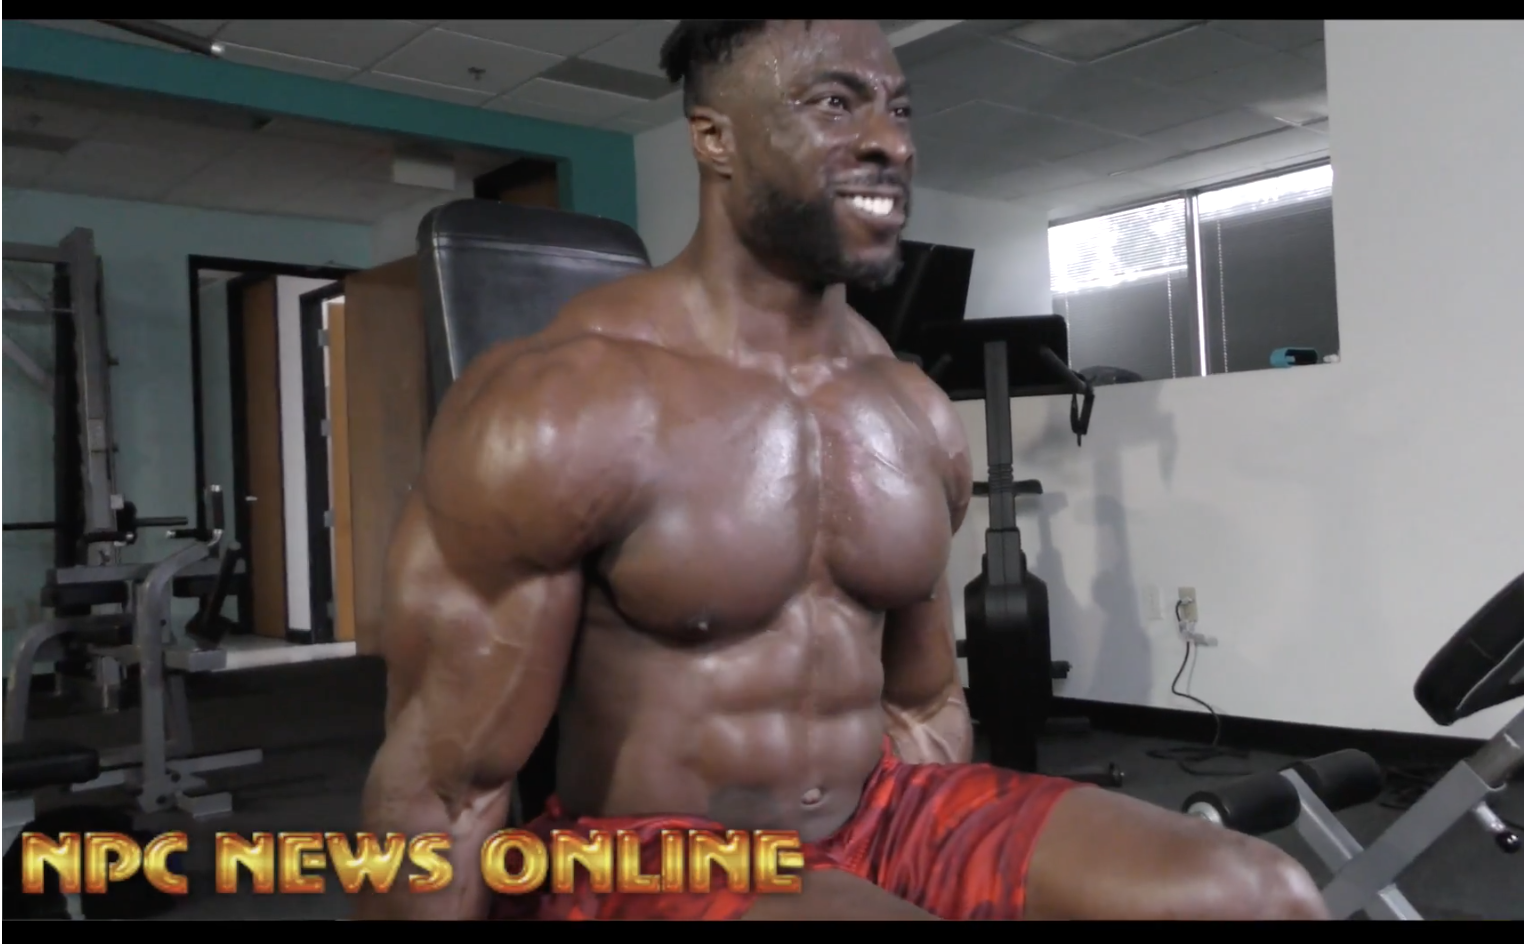 IFBB Men's Physique Pro Travales Blount 3 Weeks Out From IFBB Kentucky Pro Video